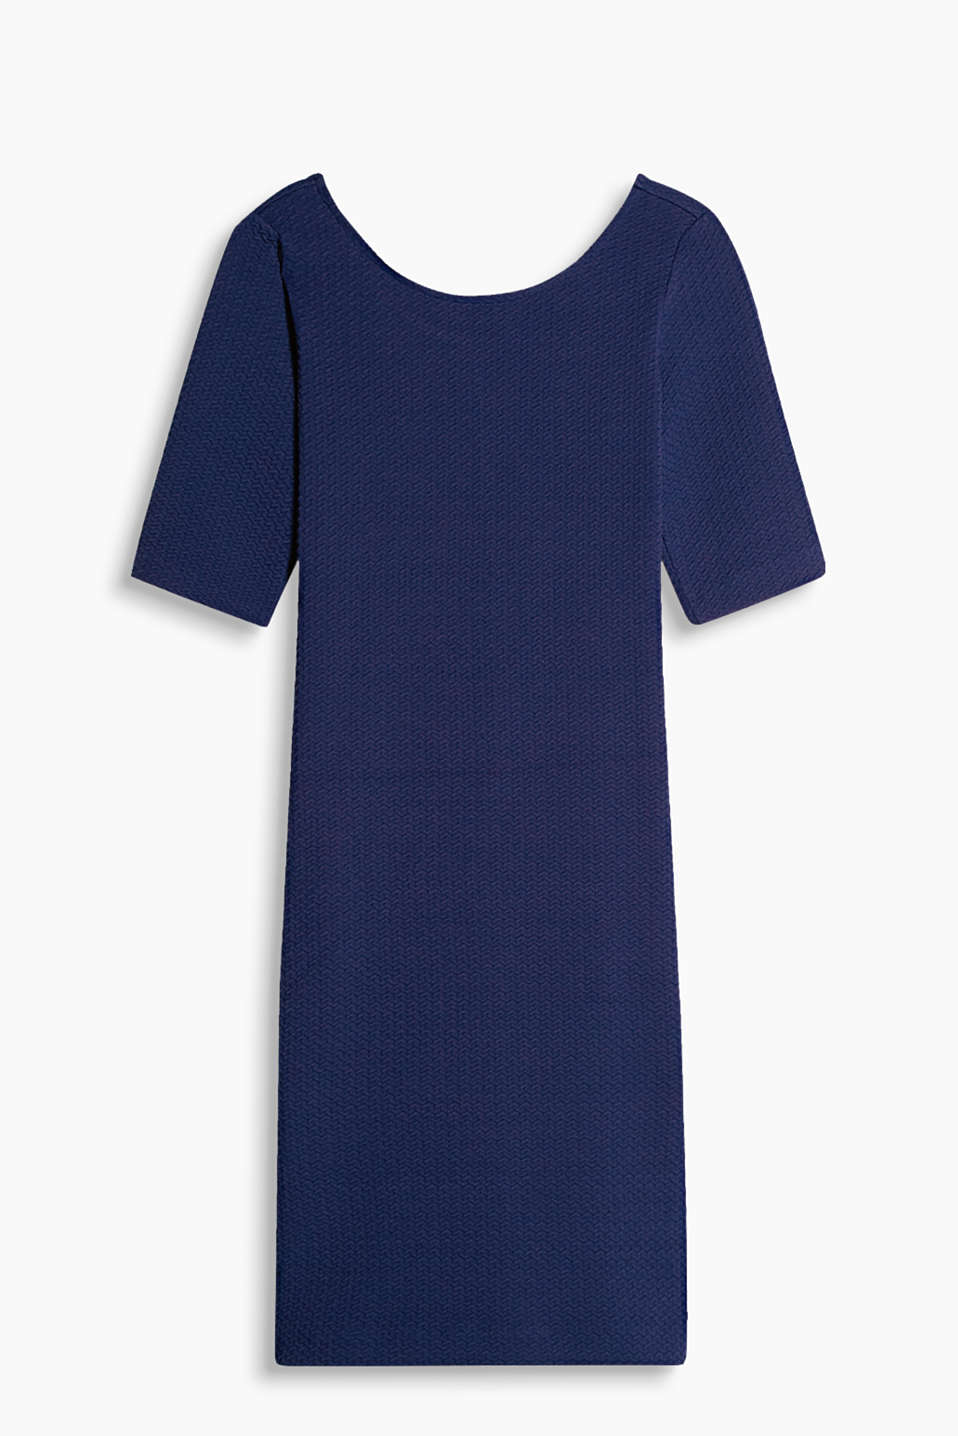 Stretch jersey dress with an all-over textured pattern and deeper back neckline